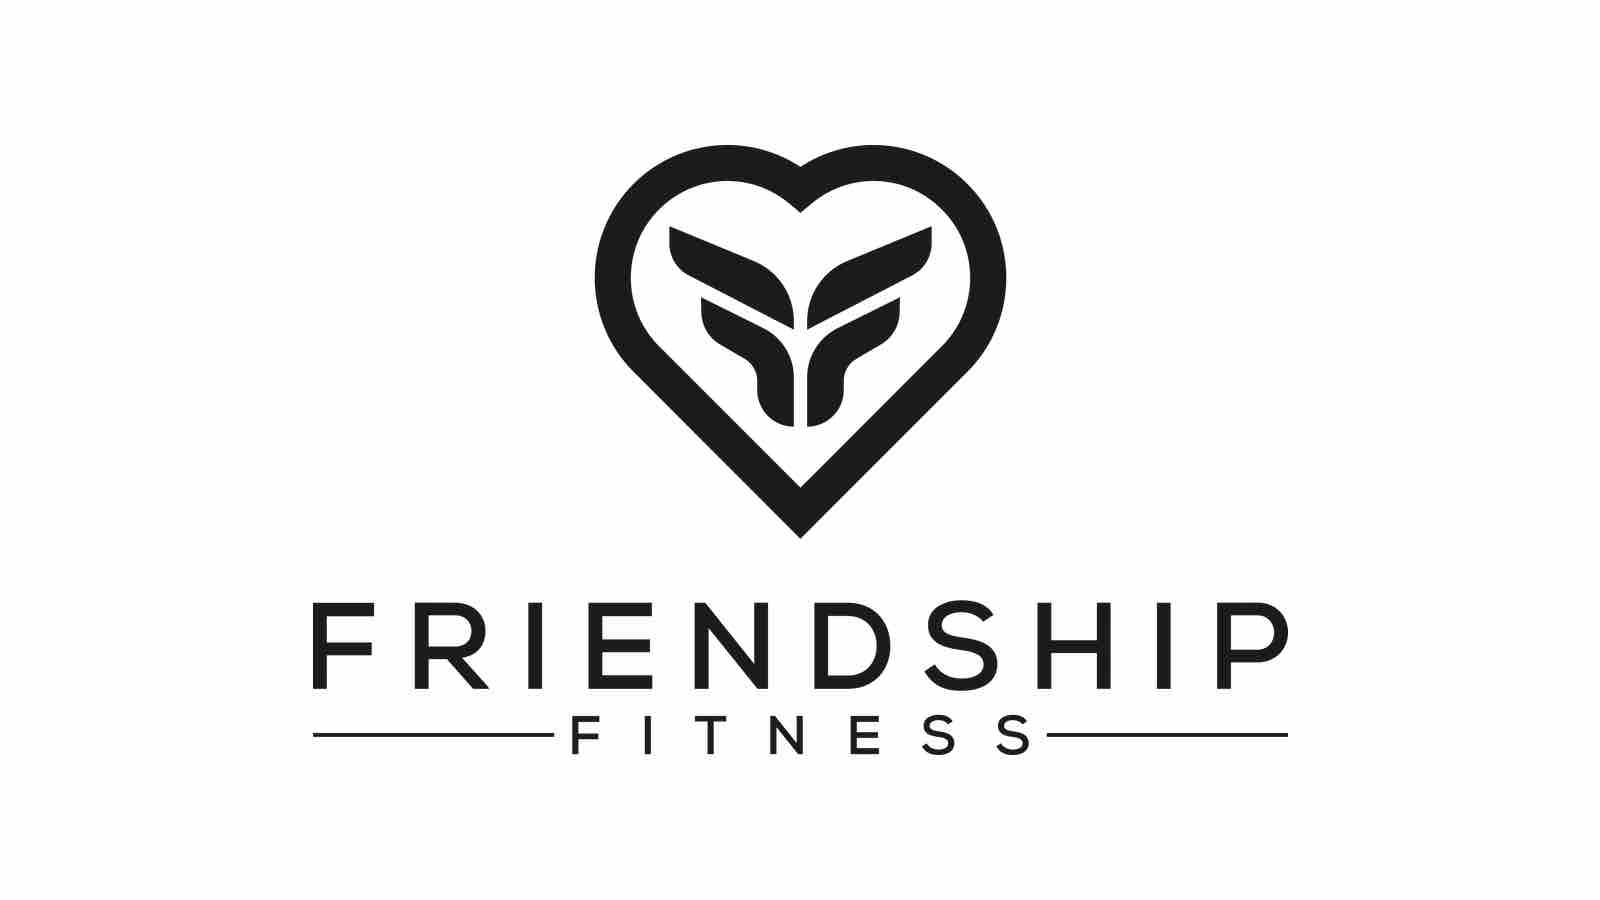 Slideshow Friendship Fitness.jpg